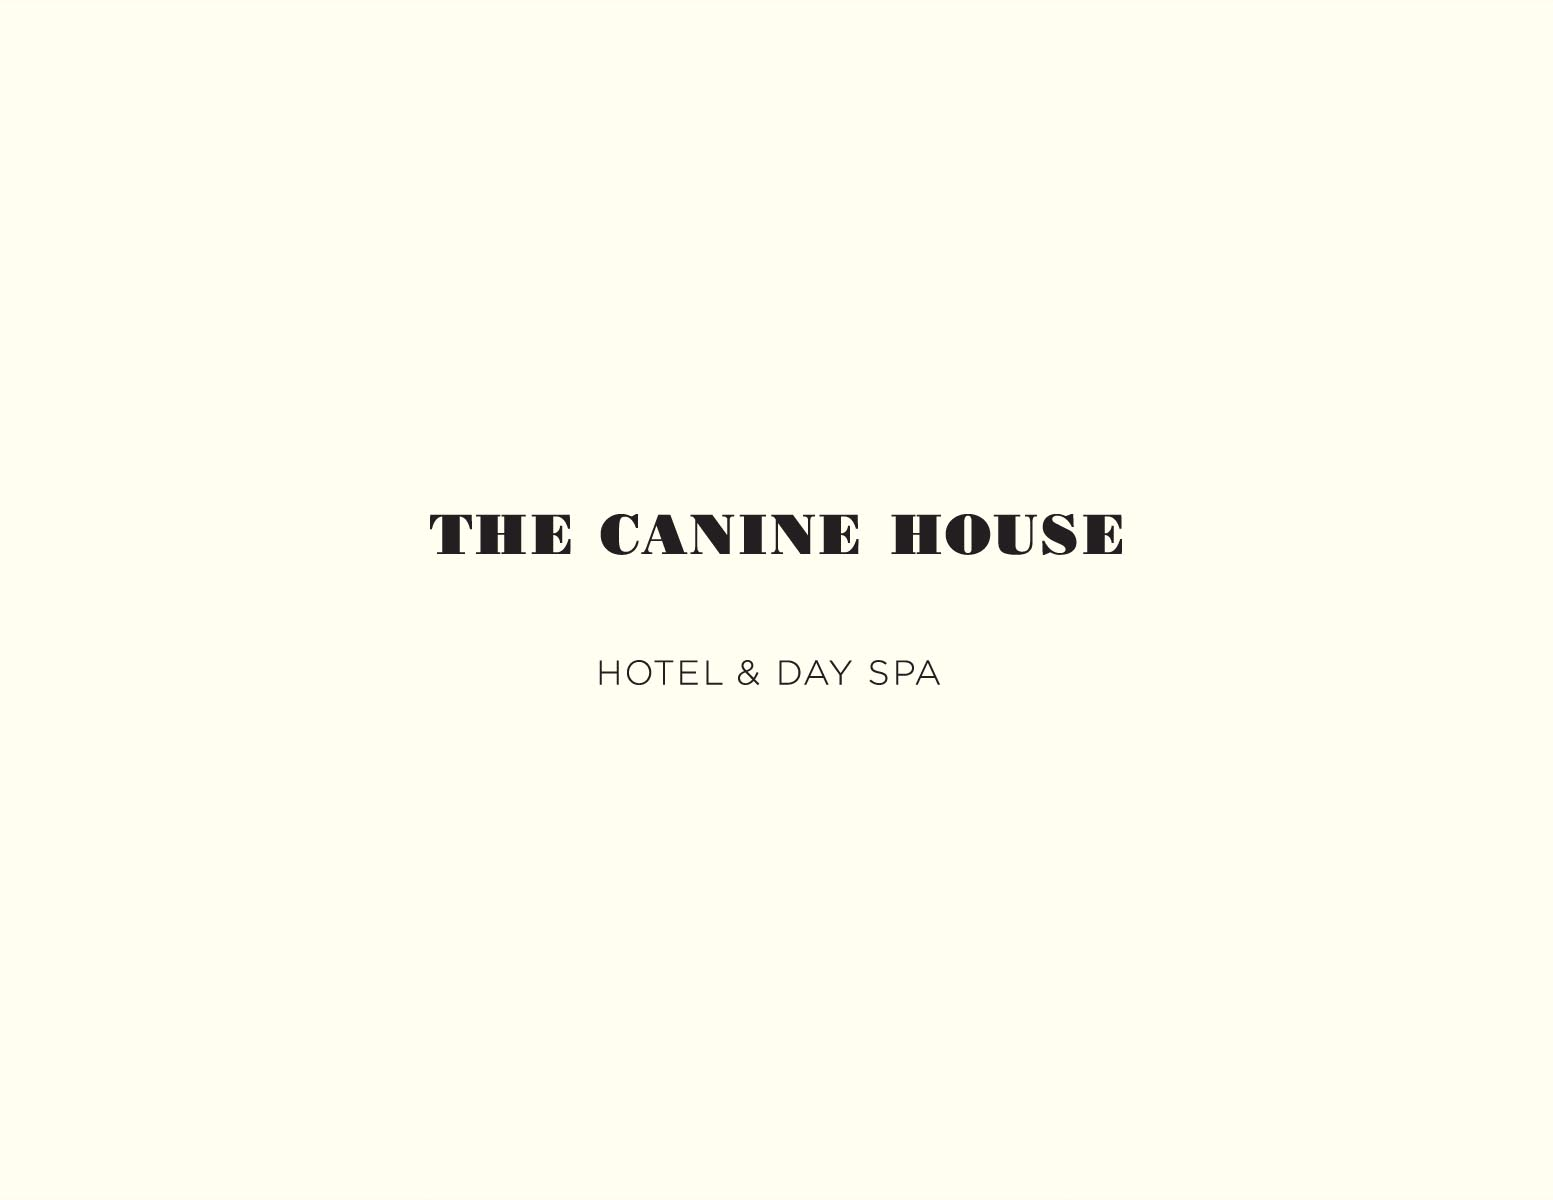 The_Canine_House_02.jpg